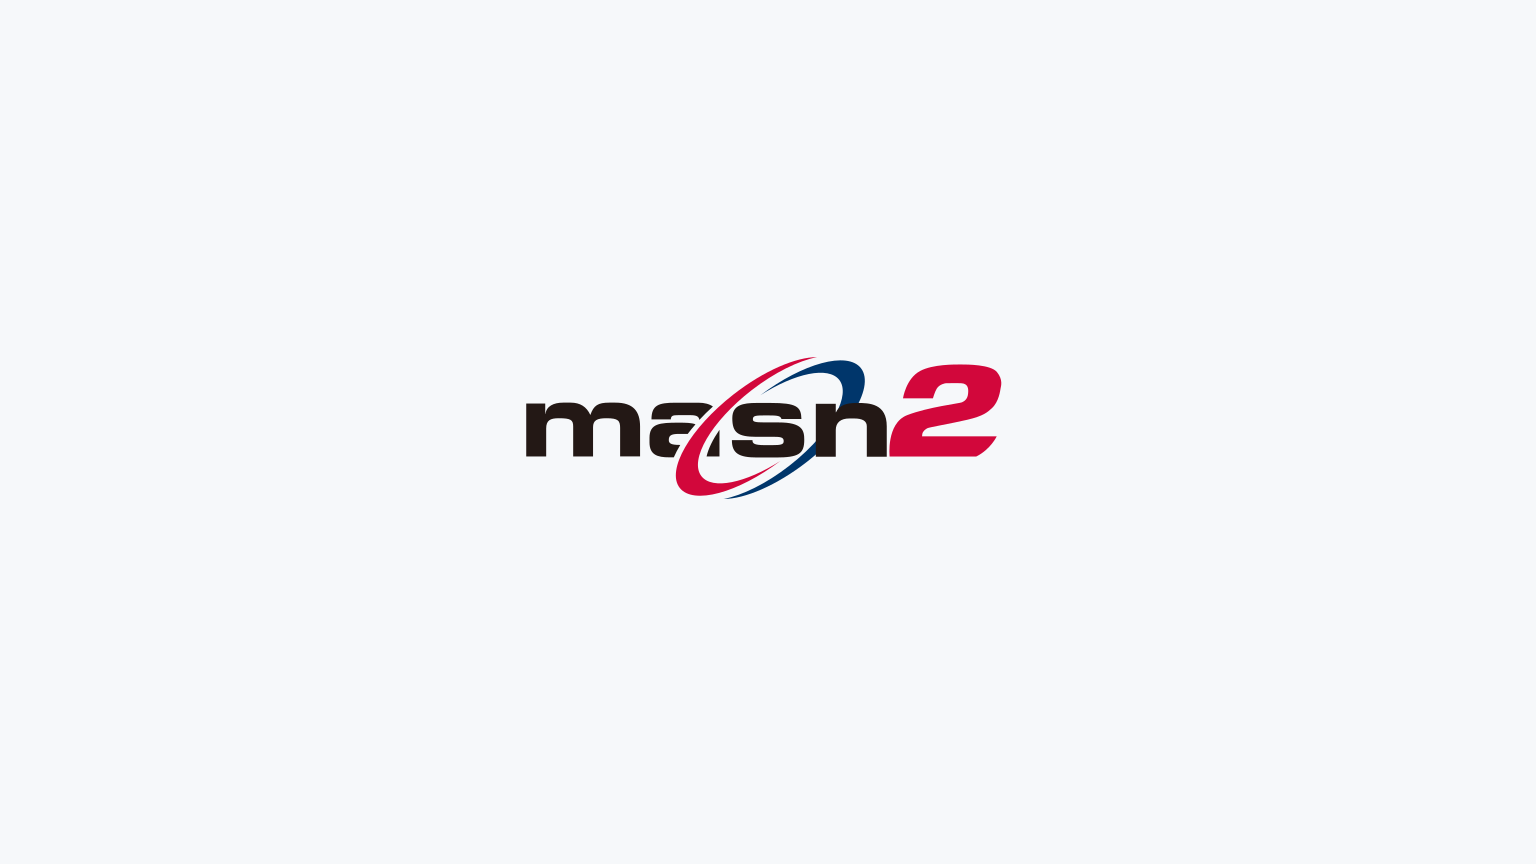 How to Watch MASN2 Live Without Cable in 2021